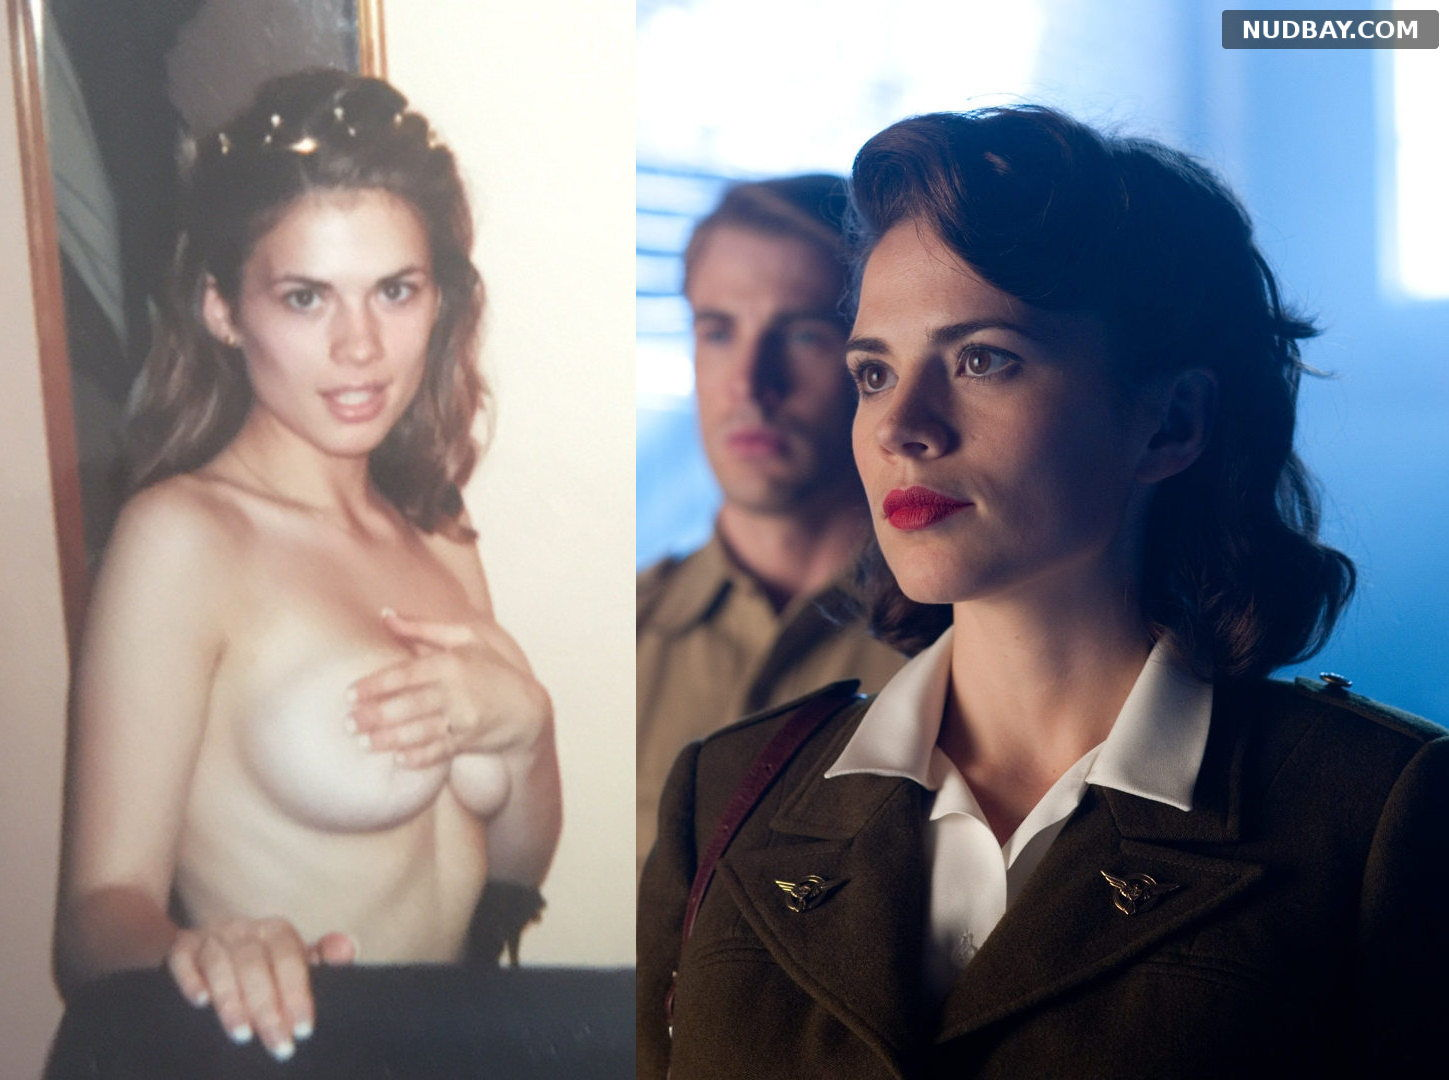 Hayley Atwell Captain America nude shows huge tits 2021